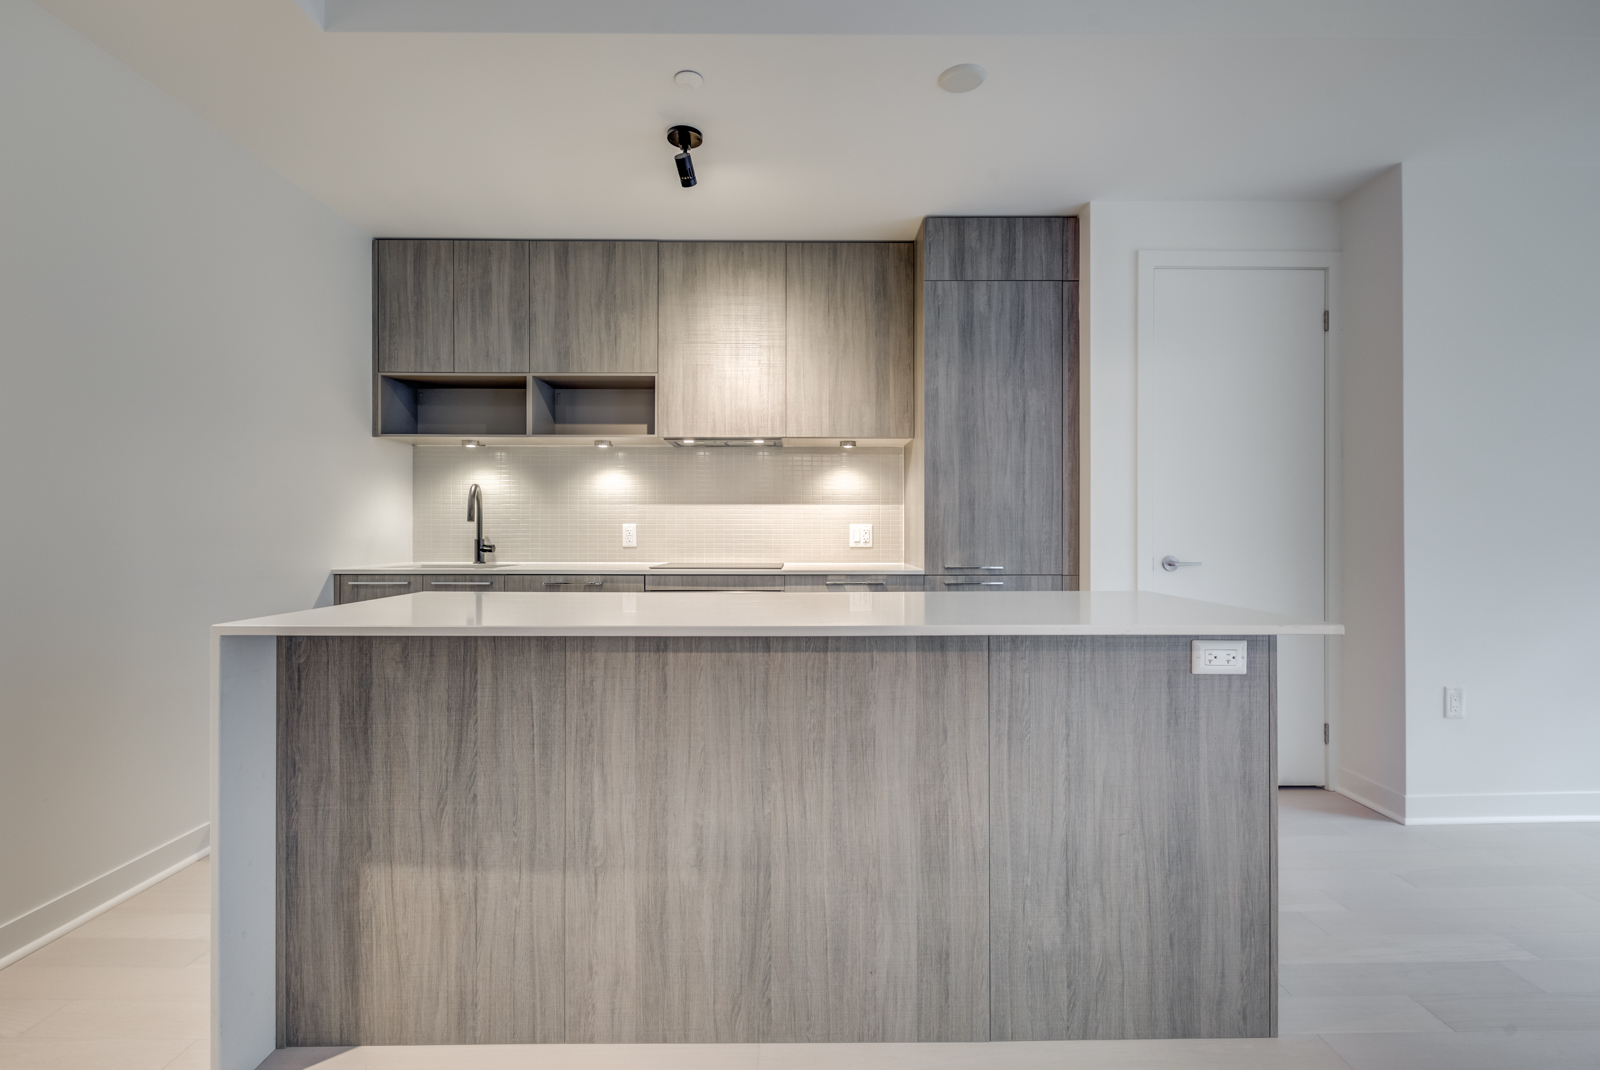 Centered view of kitchen island in foreground and cabinets in background.